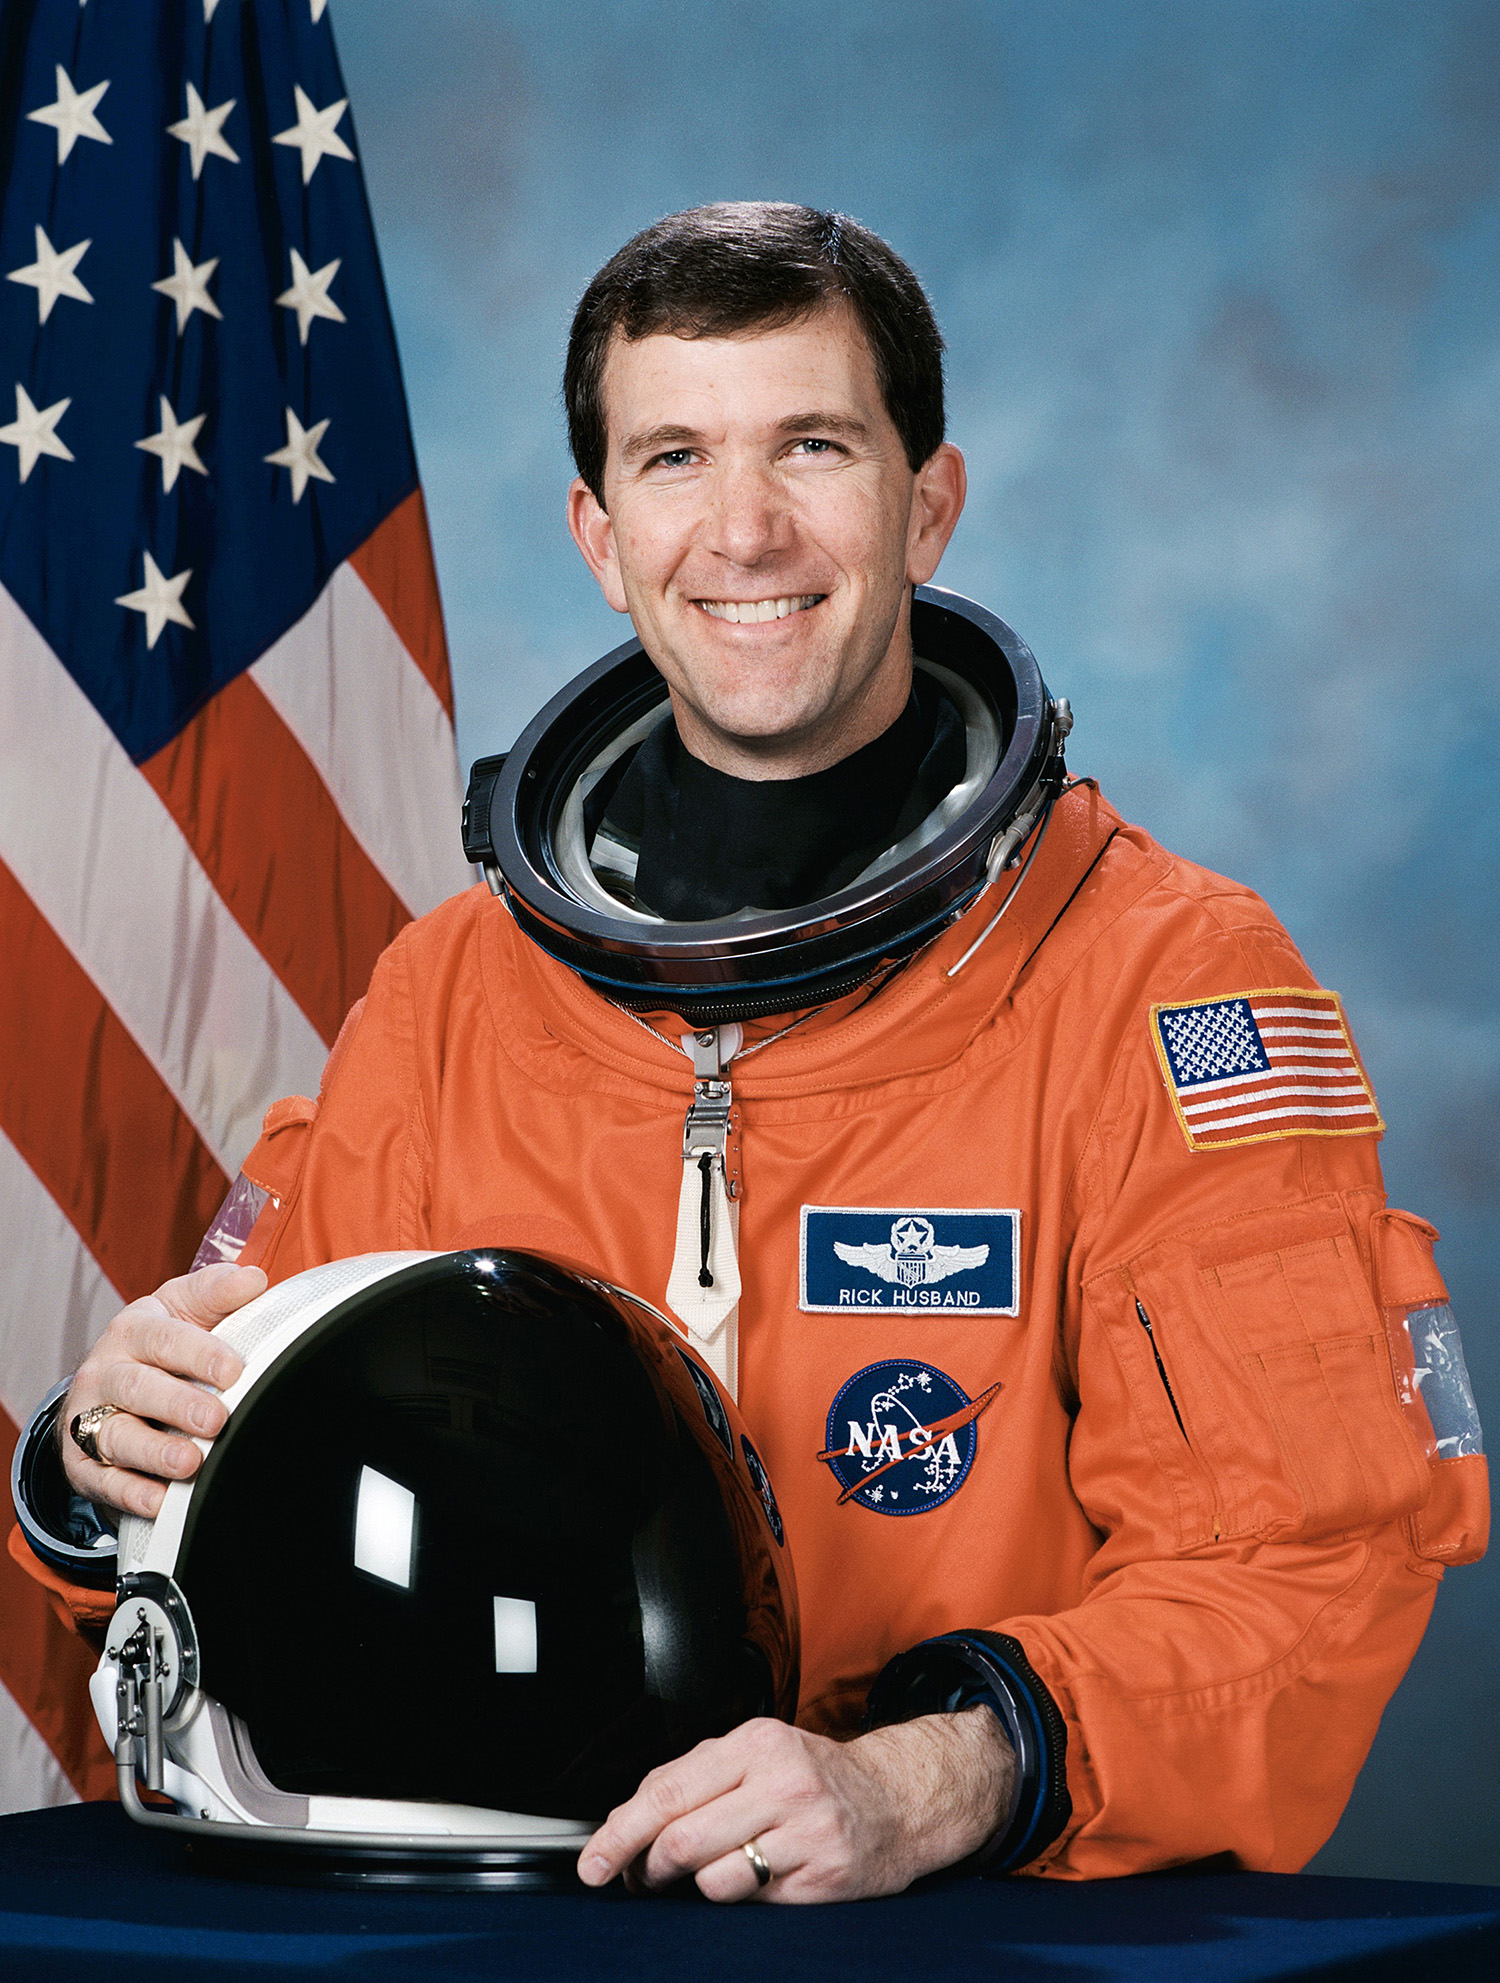 Richard Husband, NASA portrait